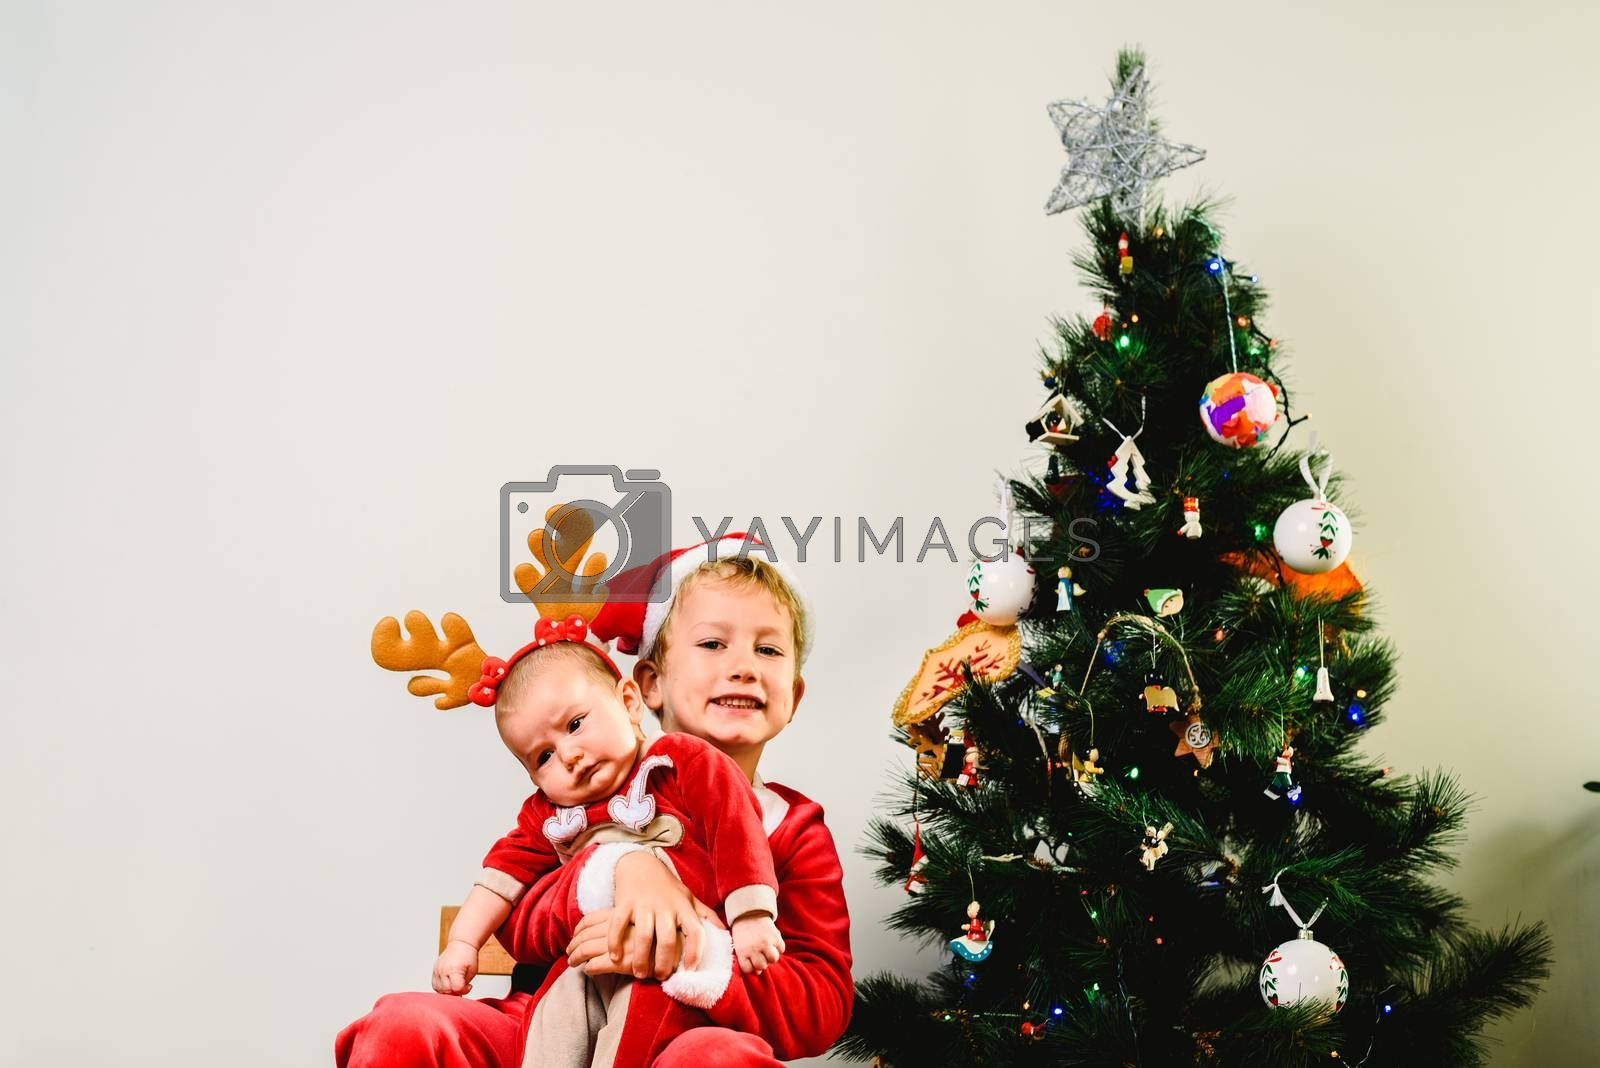 Toddler and newborn baby, siblings disguised as christmas, holid by Joaquin Corbalan